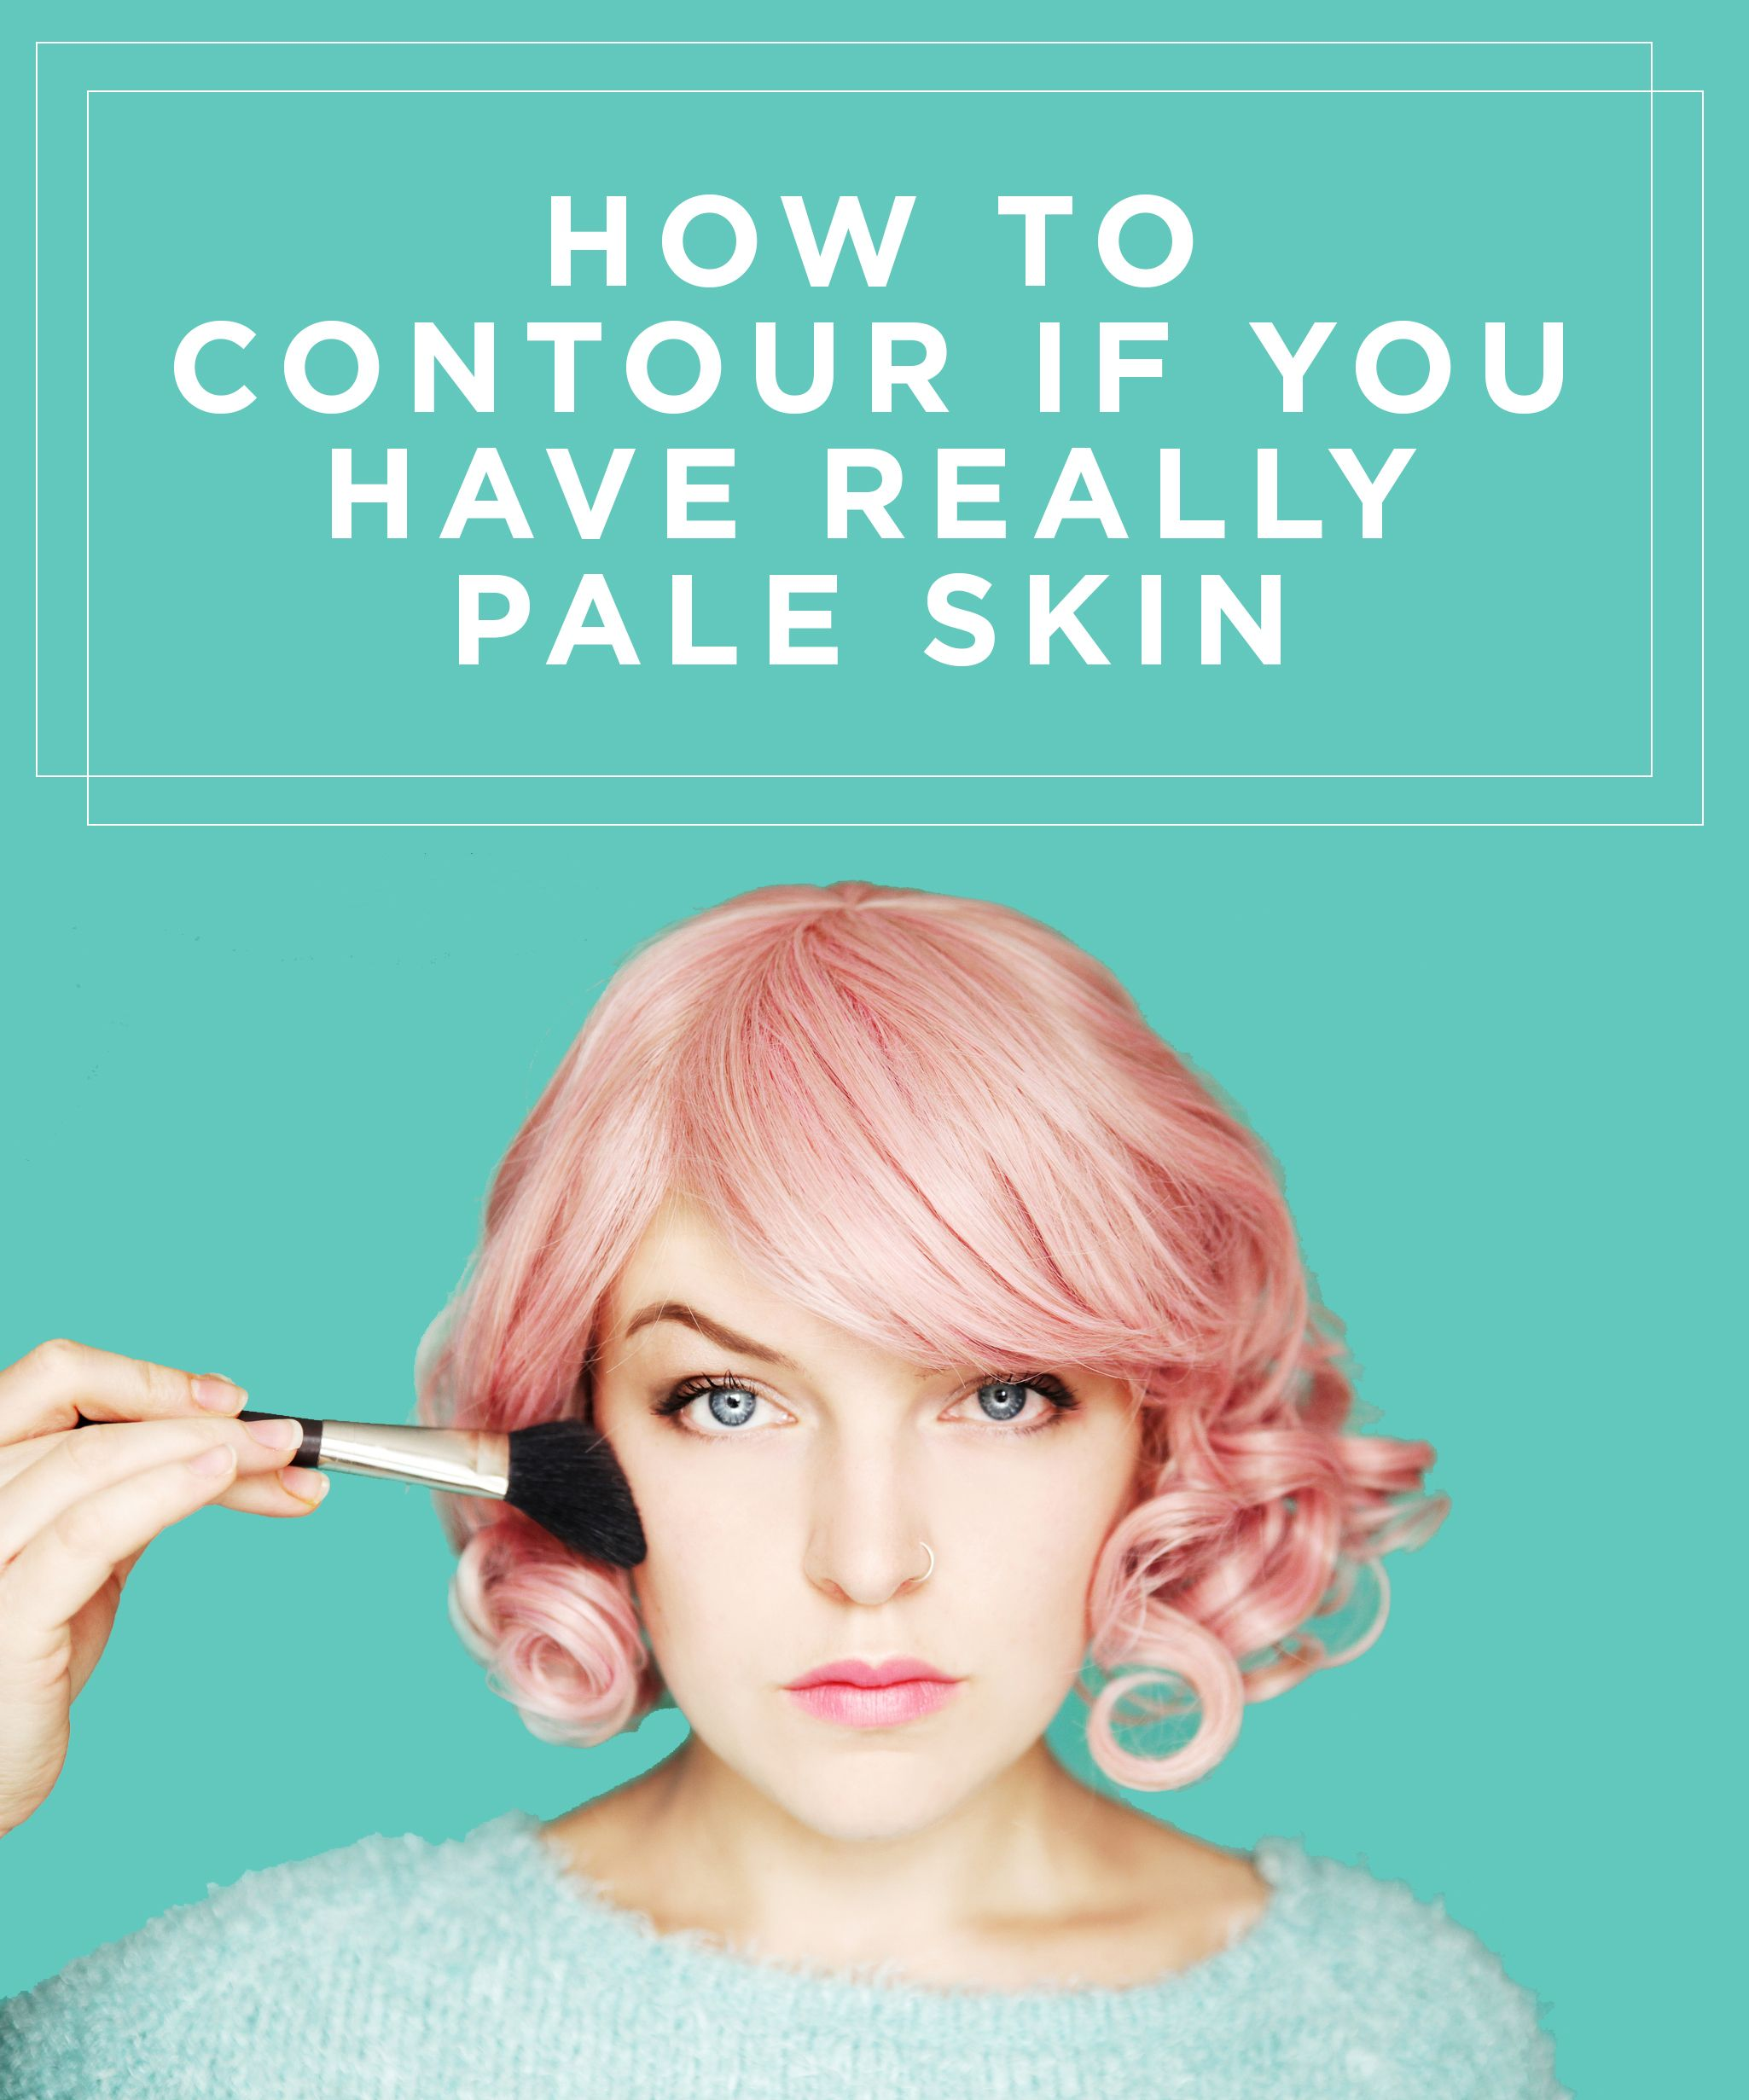 How To Contour Pale Skin in 8 Easy Steps Pale skin